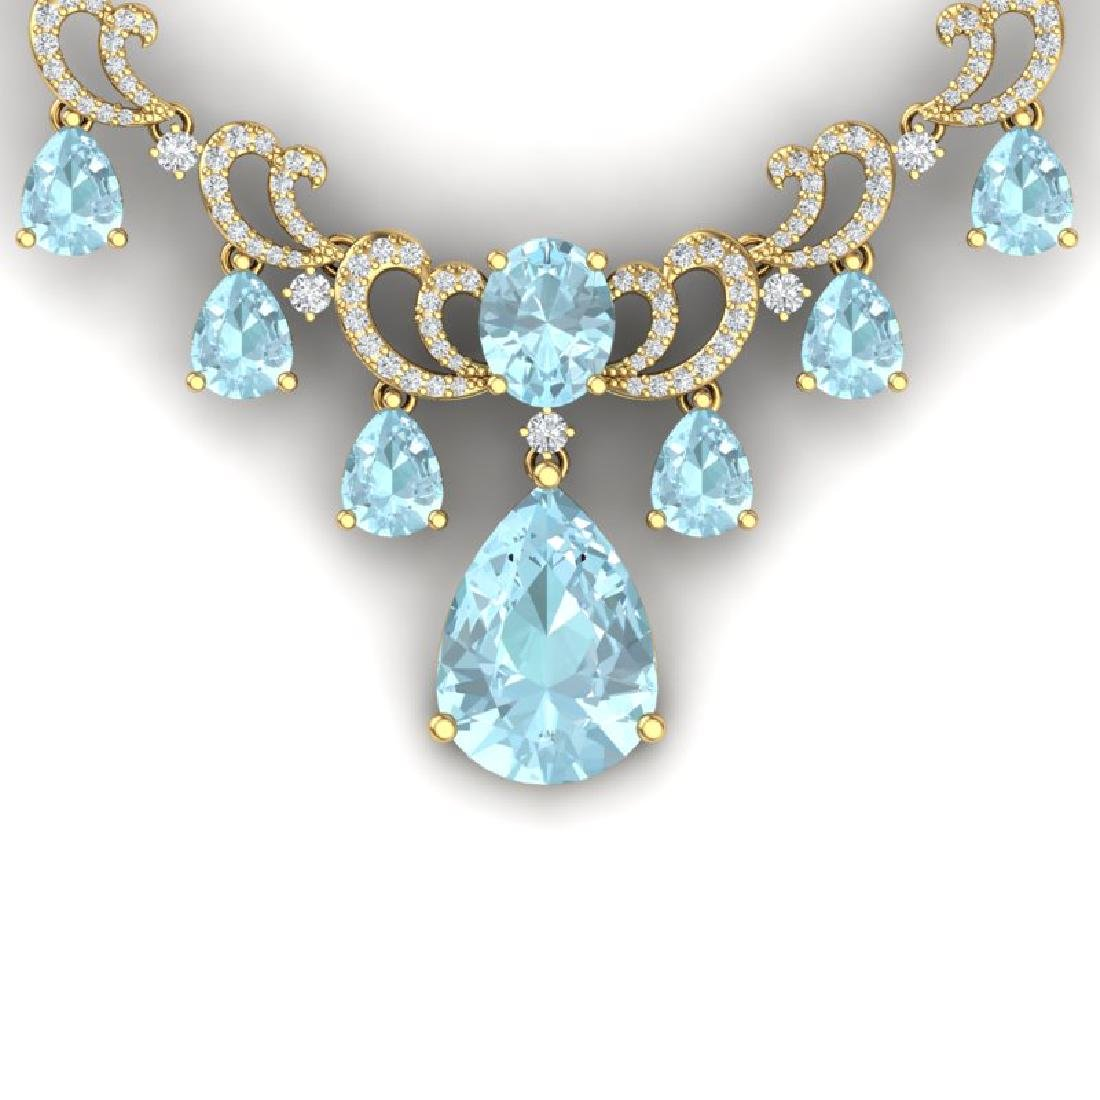 34.69 CTW Royalty Sky Topaz & VS Diamond Necklace 18K